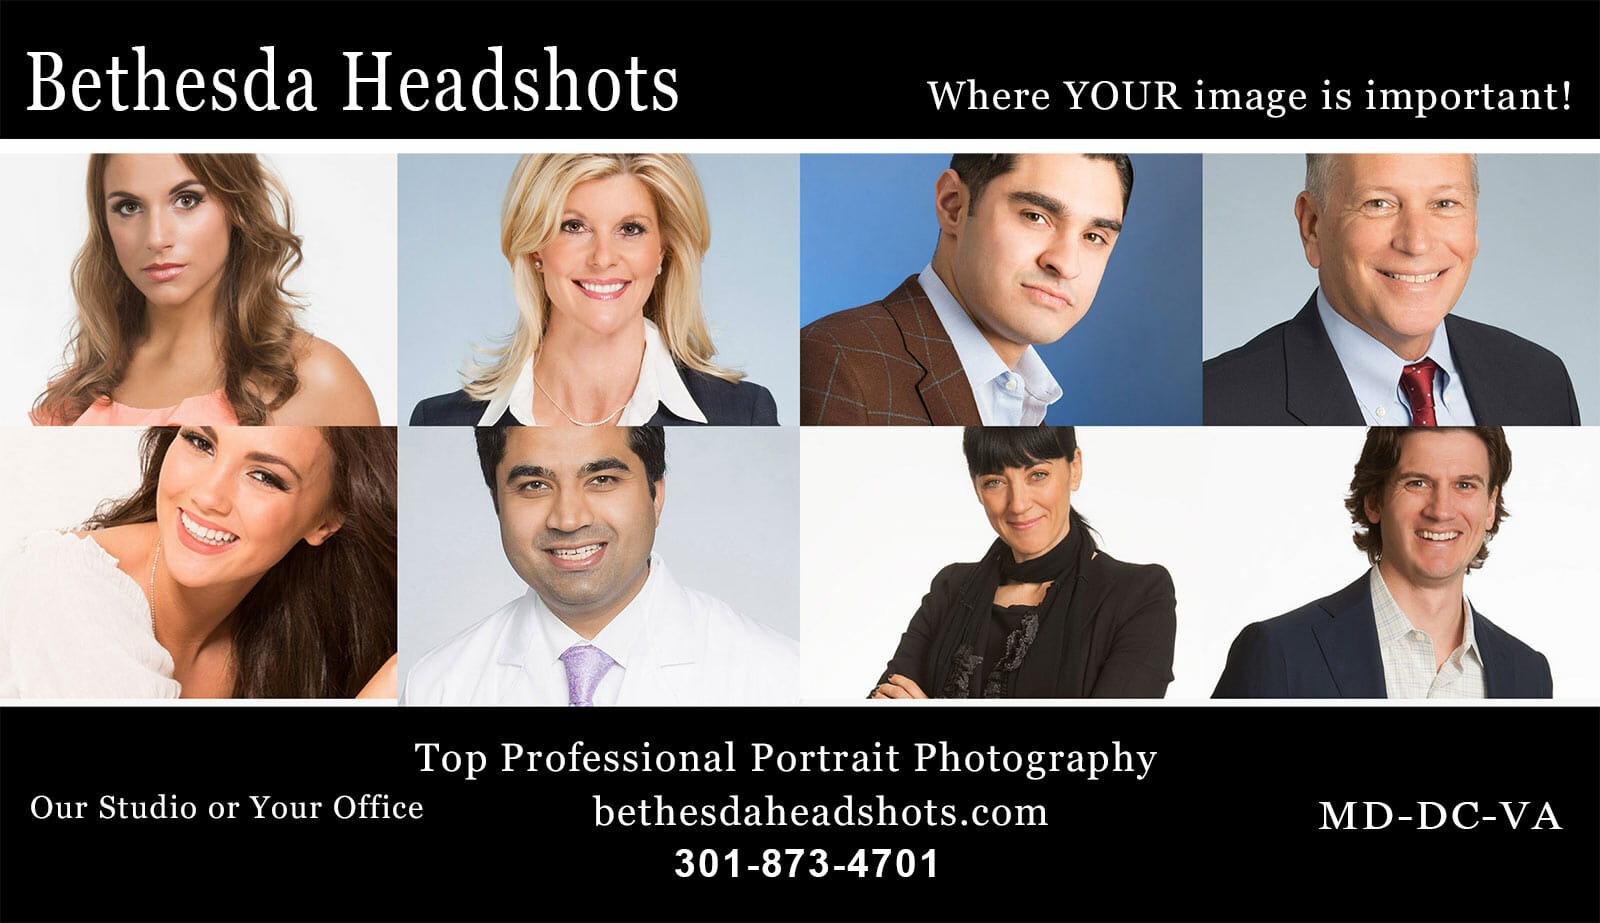 Creating amazing LinkedIn Profile Portraits - one image at a time! BethesdaHeadshots.com Our Studio or Your Office MD-DC-VA 301-873-4701